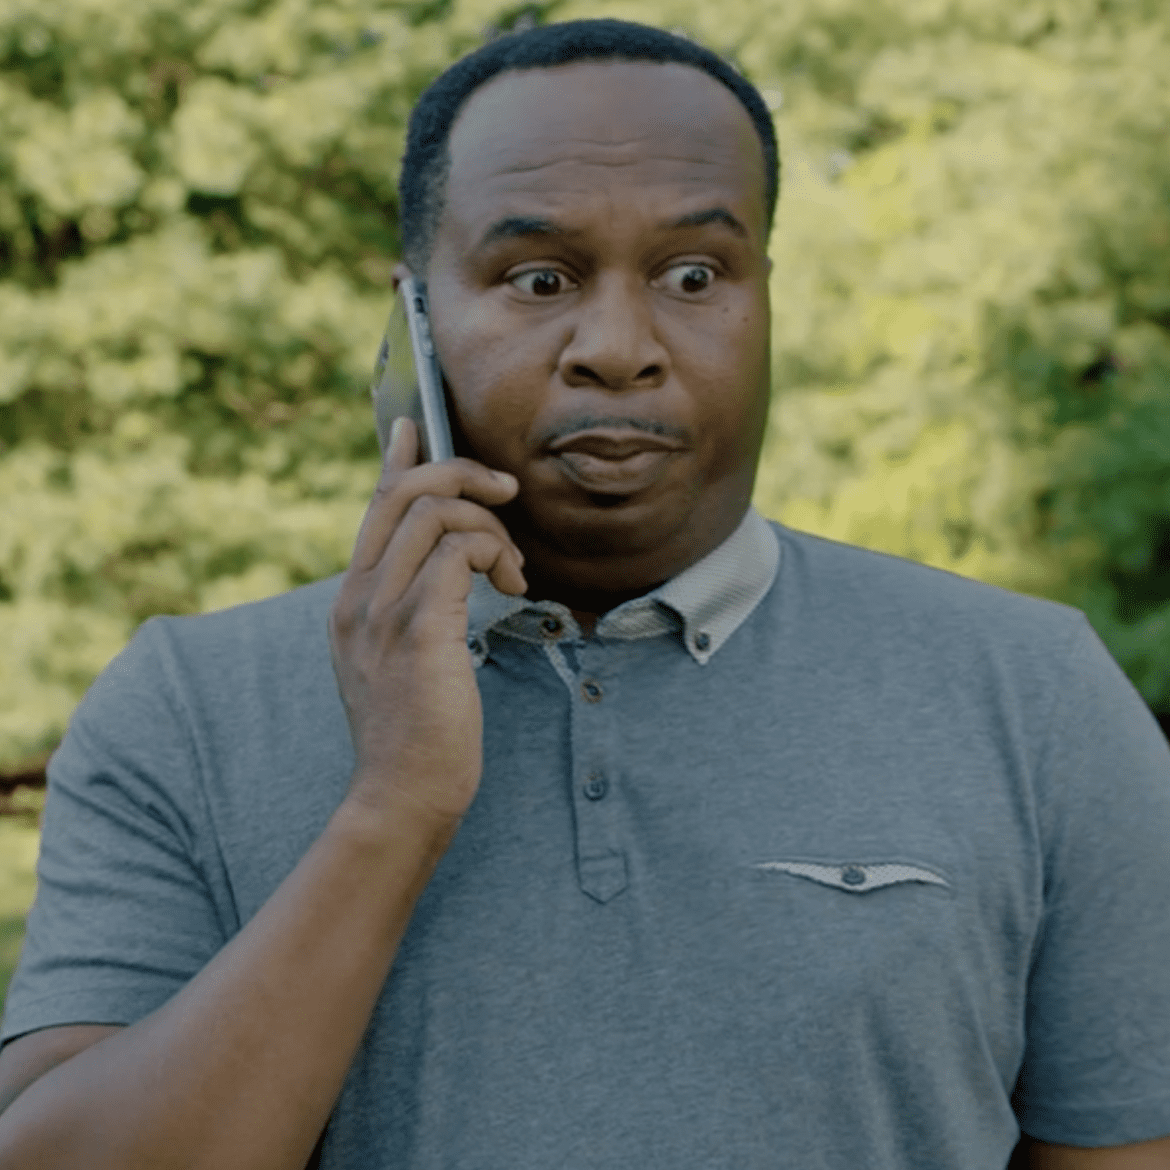 The Daily Show's Roy Wood Jr calls 911 to report a Selfie Emergency in a new voter video series.